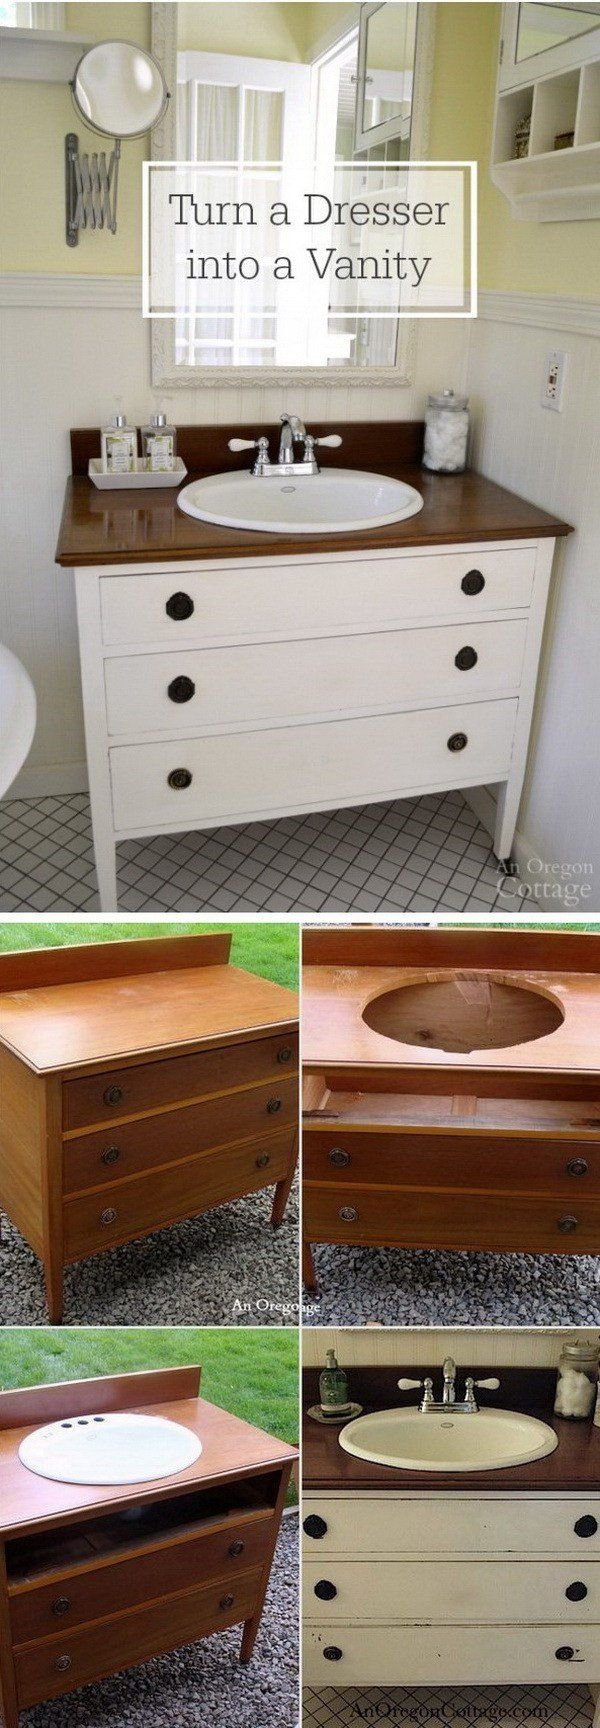 40 high style low budget furniture makeovers you could definitely do diy bathroom furniturebathroom vanity - Bathroom Cabinets Diy